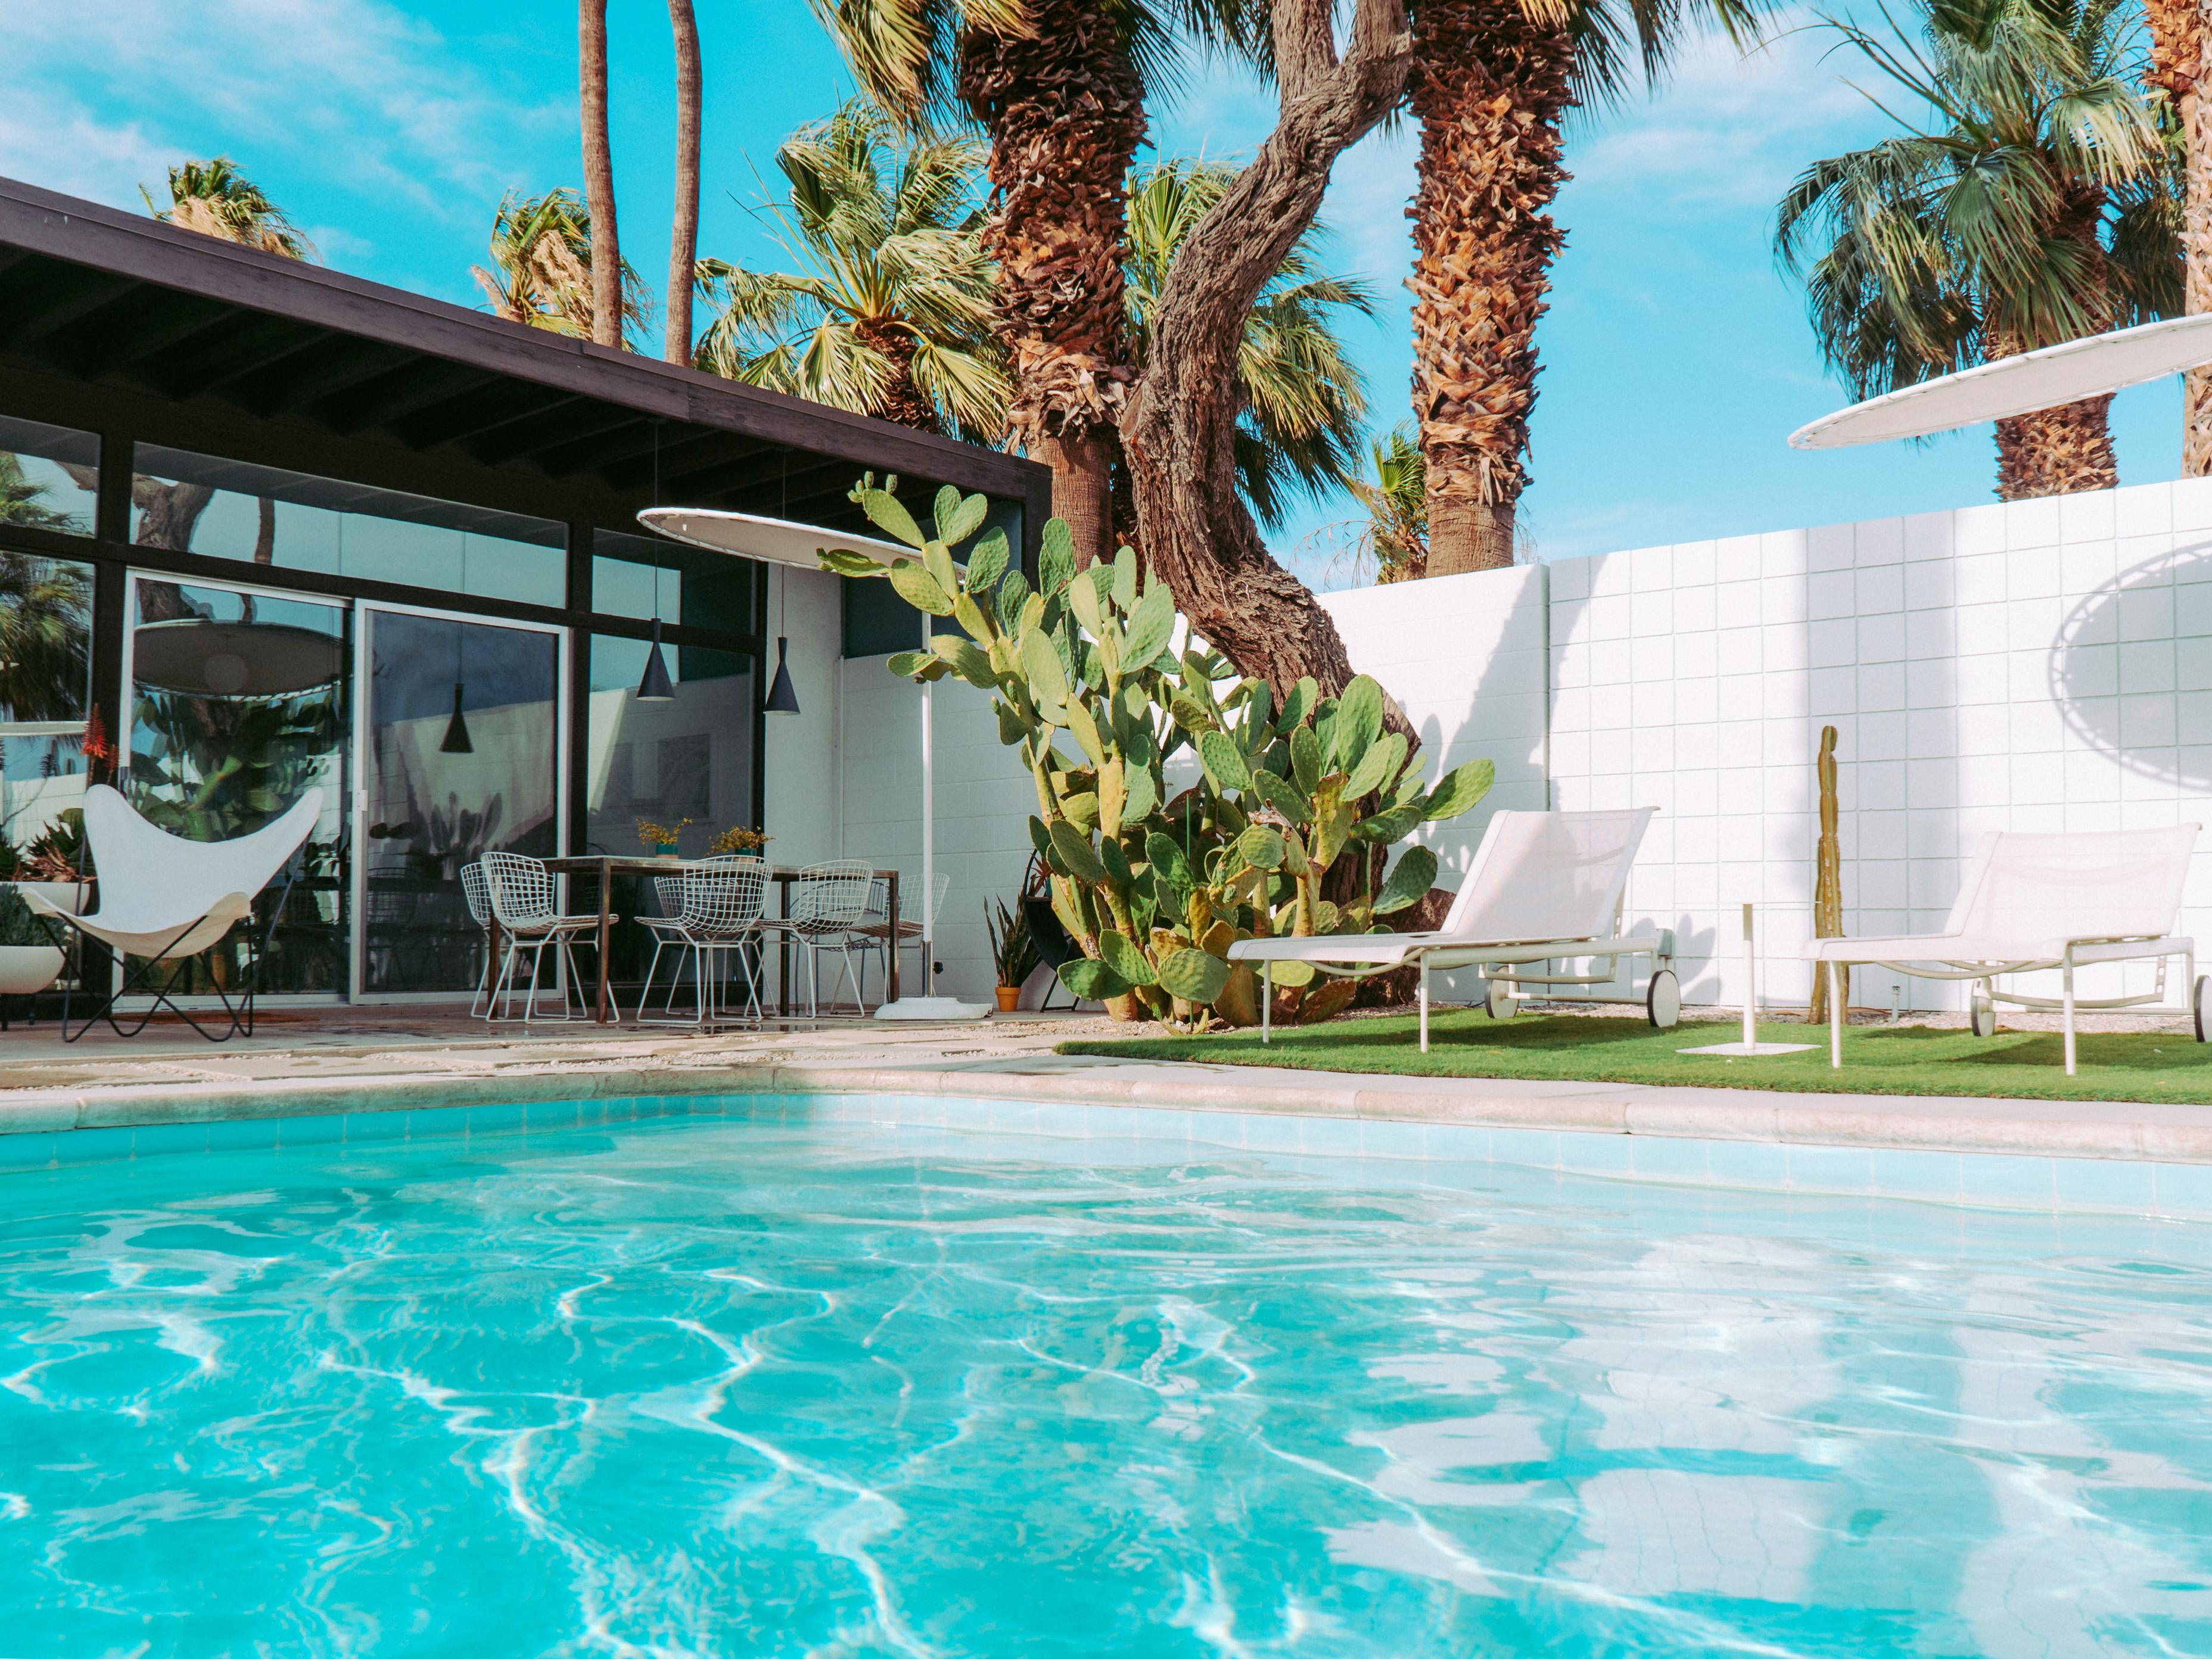 Swanky Upgraded Home in Palm Springs with Fabulous VIew